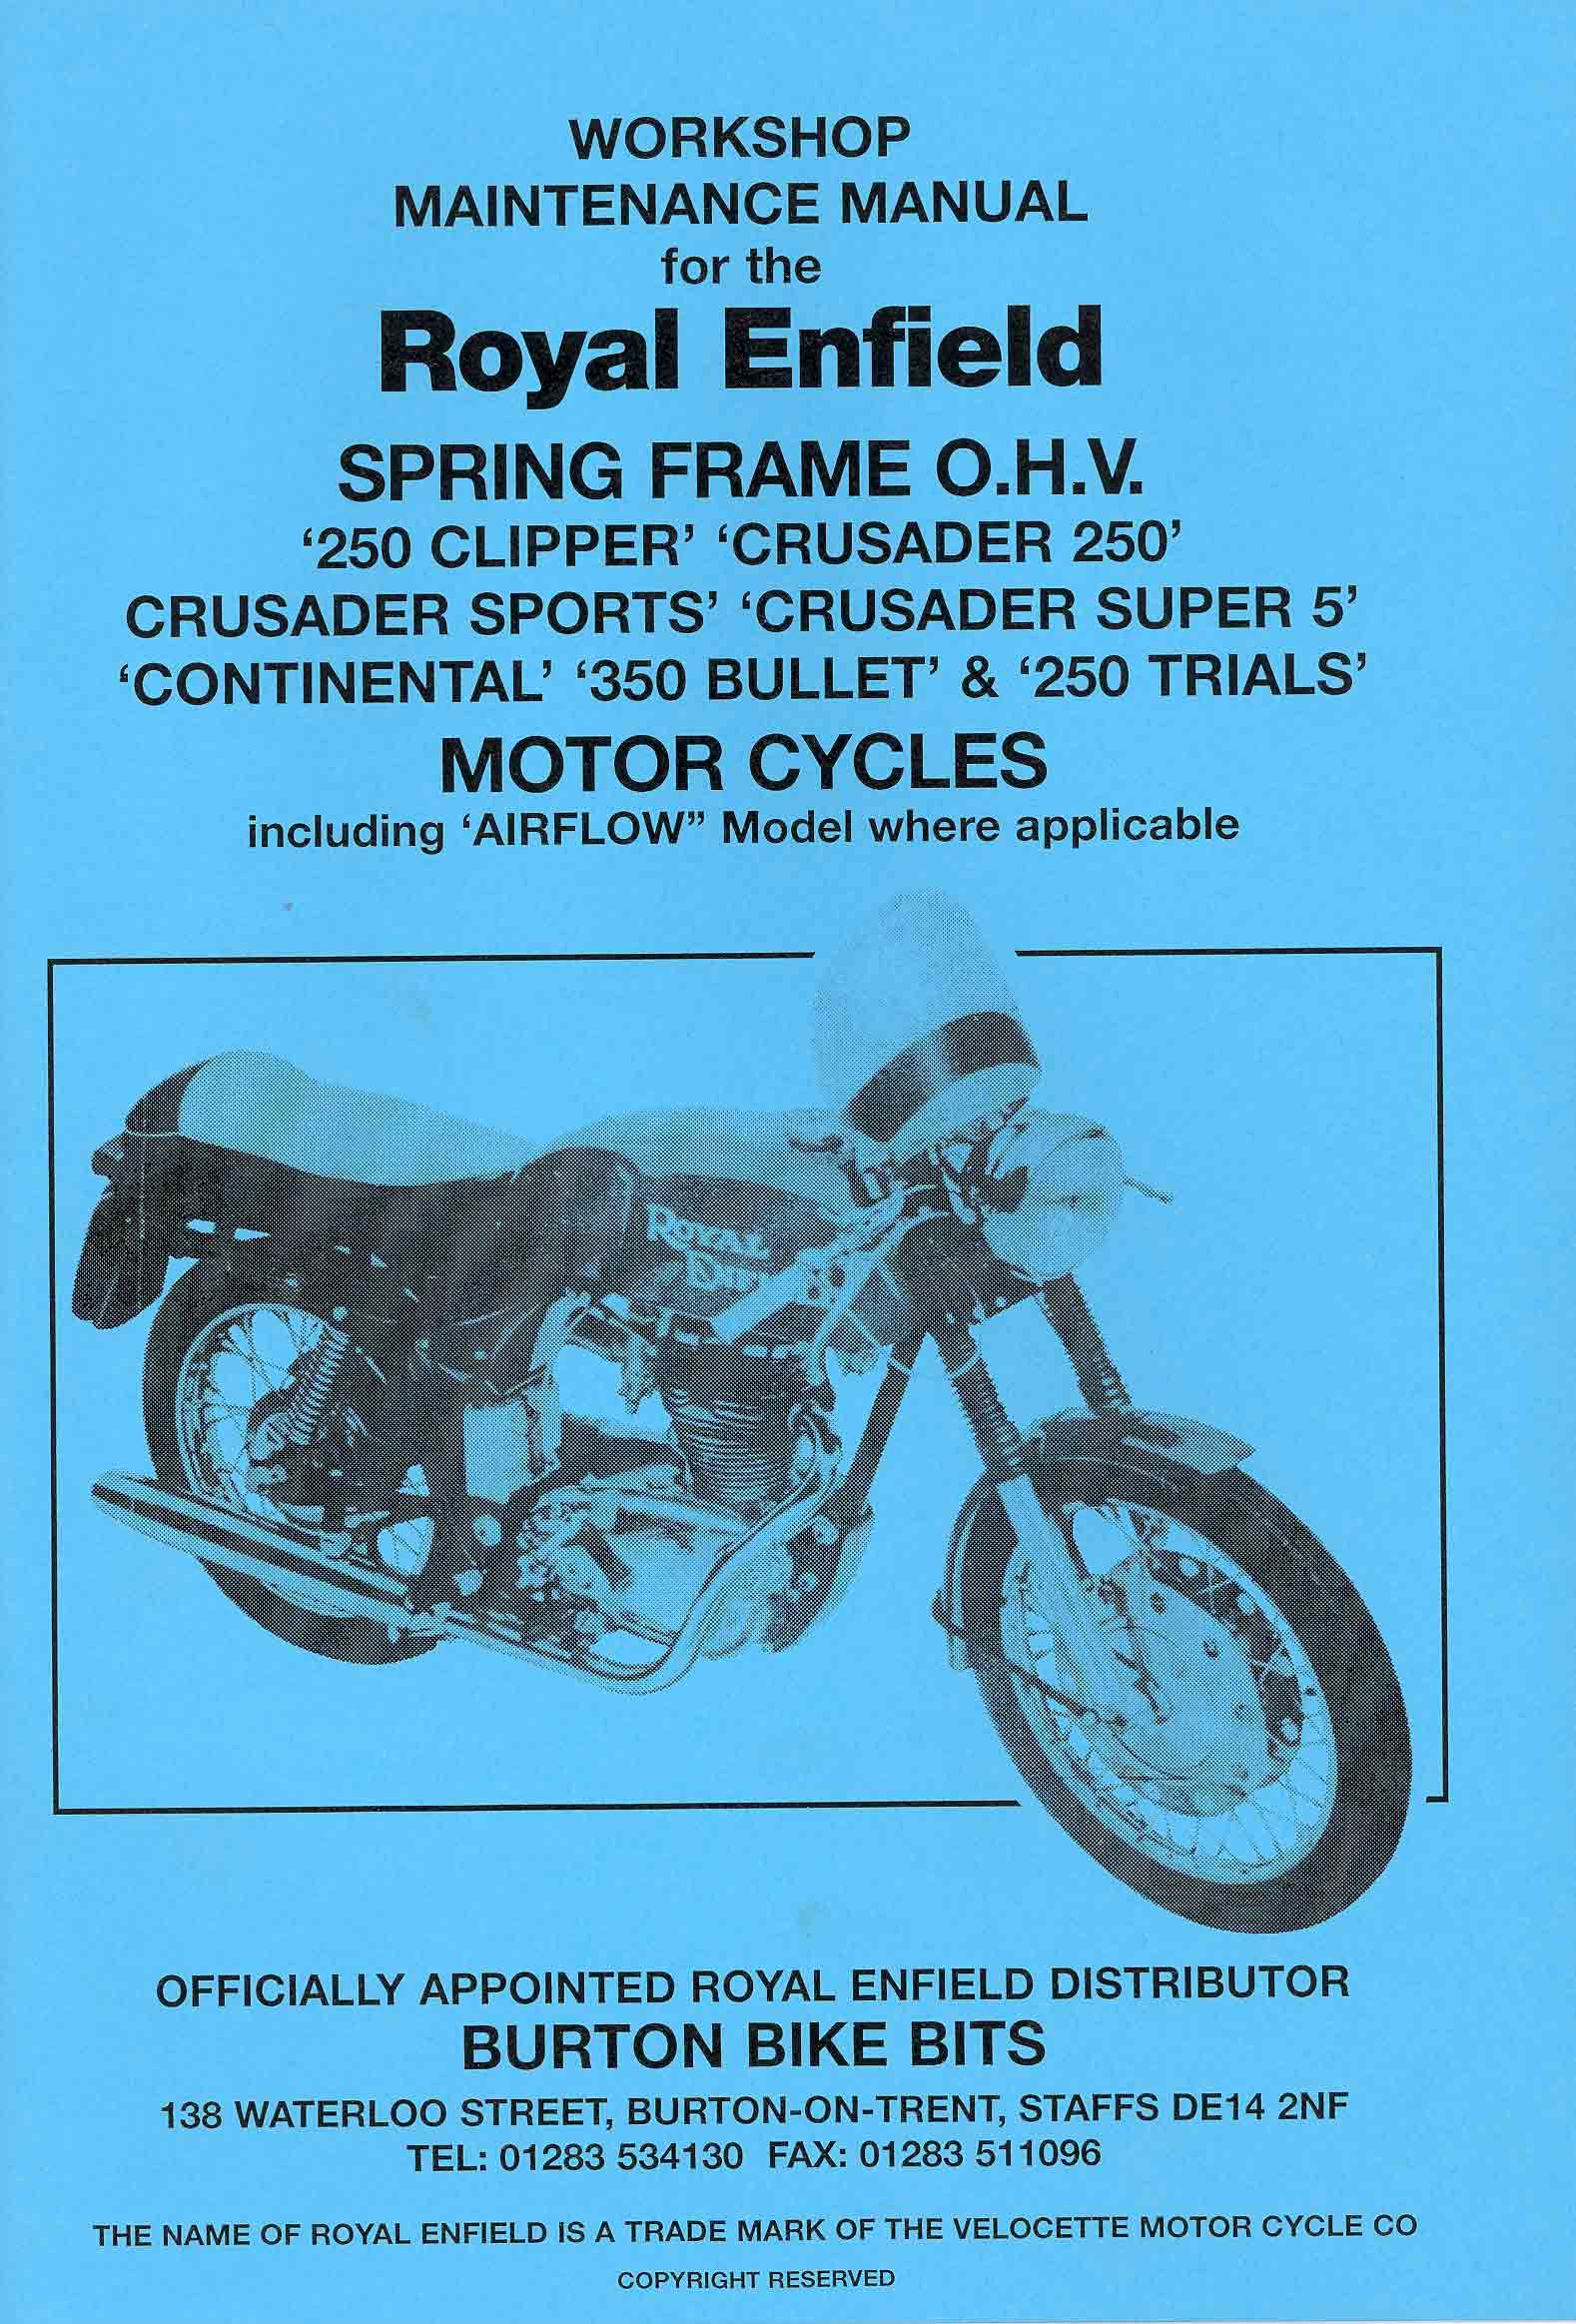 Parts Books Burton Bike Bits 1968 Triumph Tr250 Wiring Diagram Royal Enfield 250 Clipper Crusader Sports Super 5 Continental 350 Bullet Trials